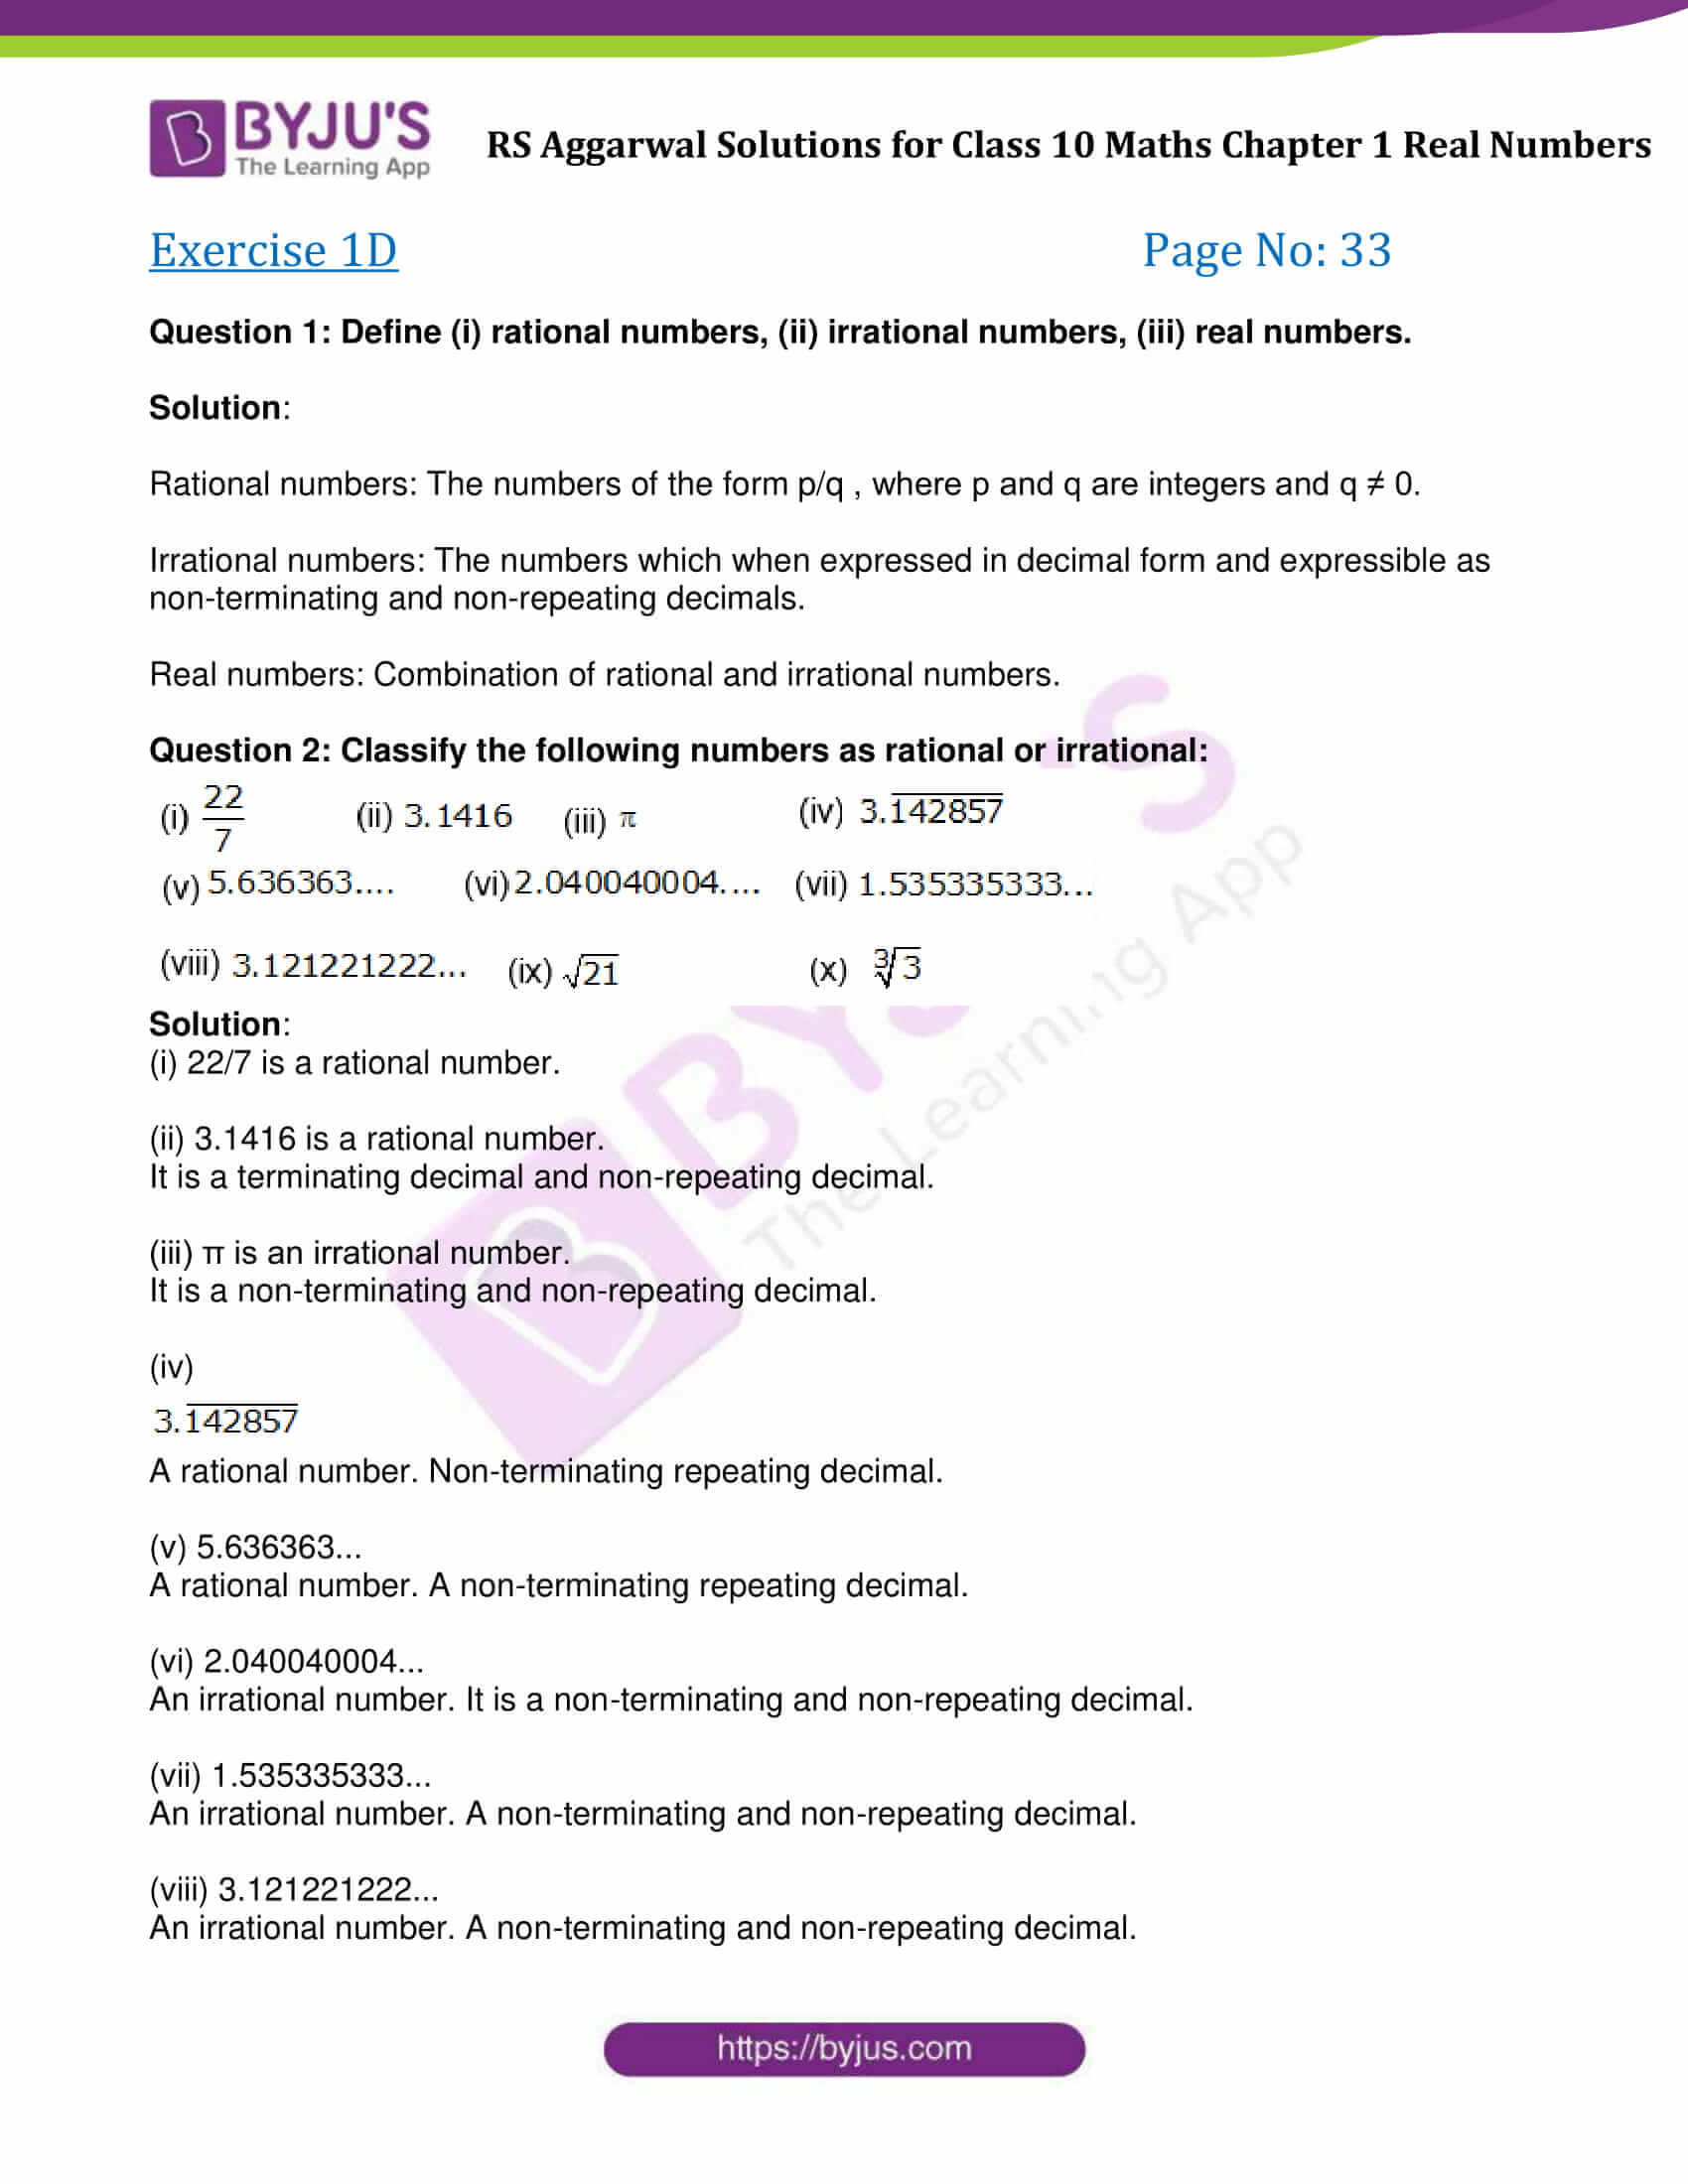 Rs Aggarwal Solution Class 10 Maths Chapter 1 Ex 1D